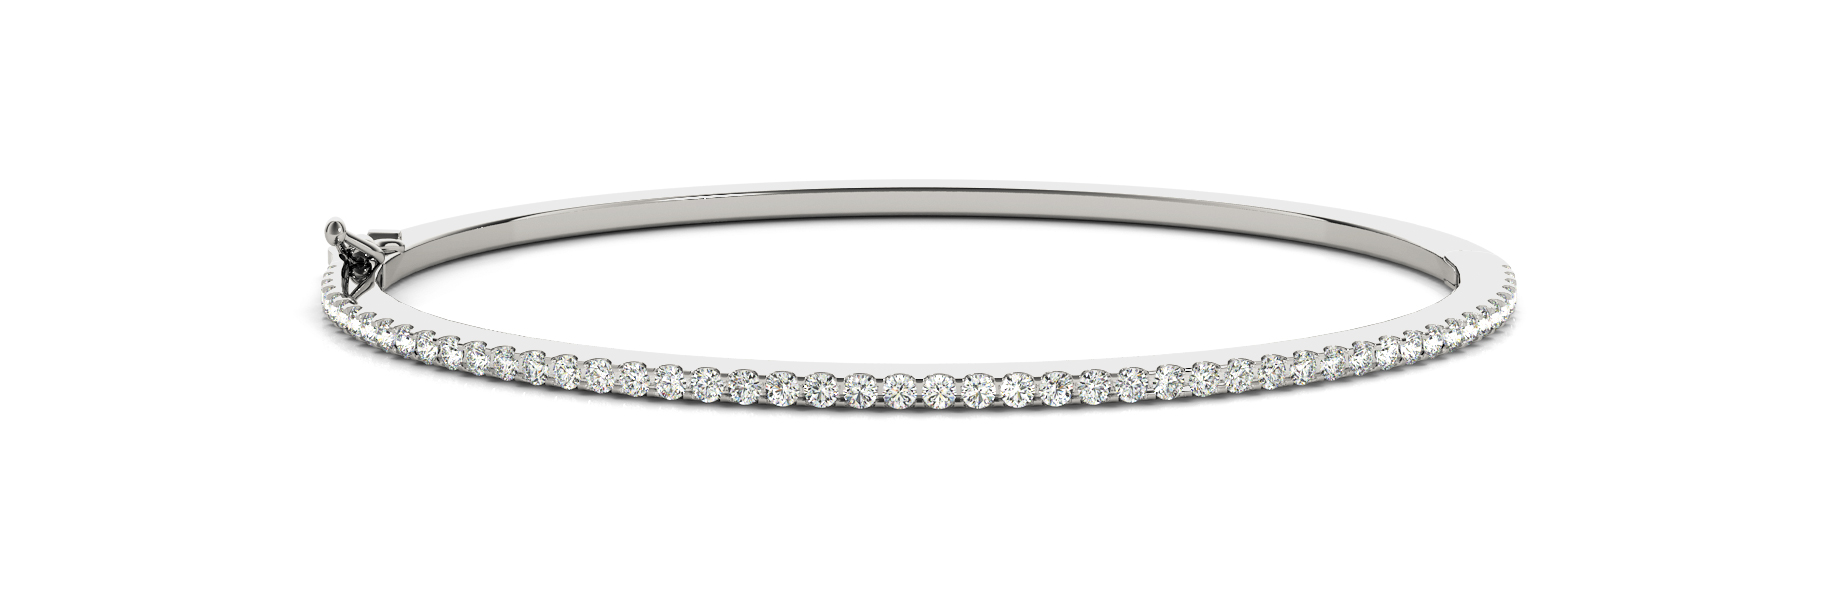 Diamond Bangle in White Gold 0.43 tcw